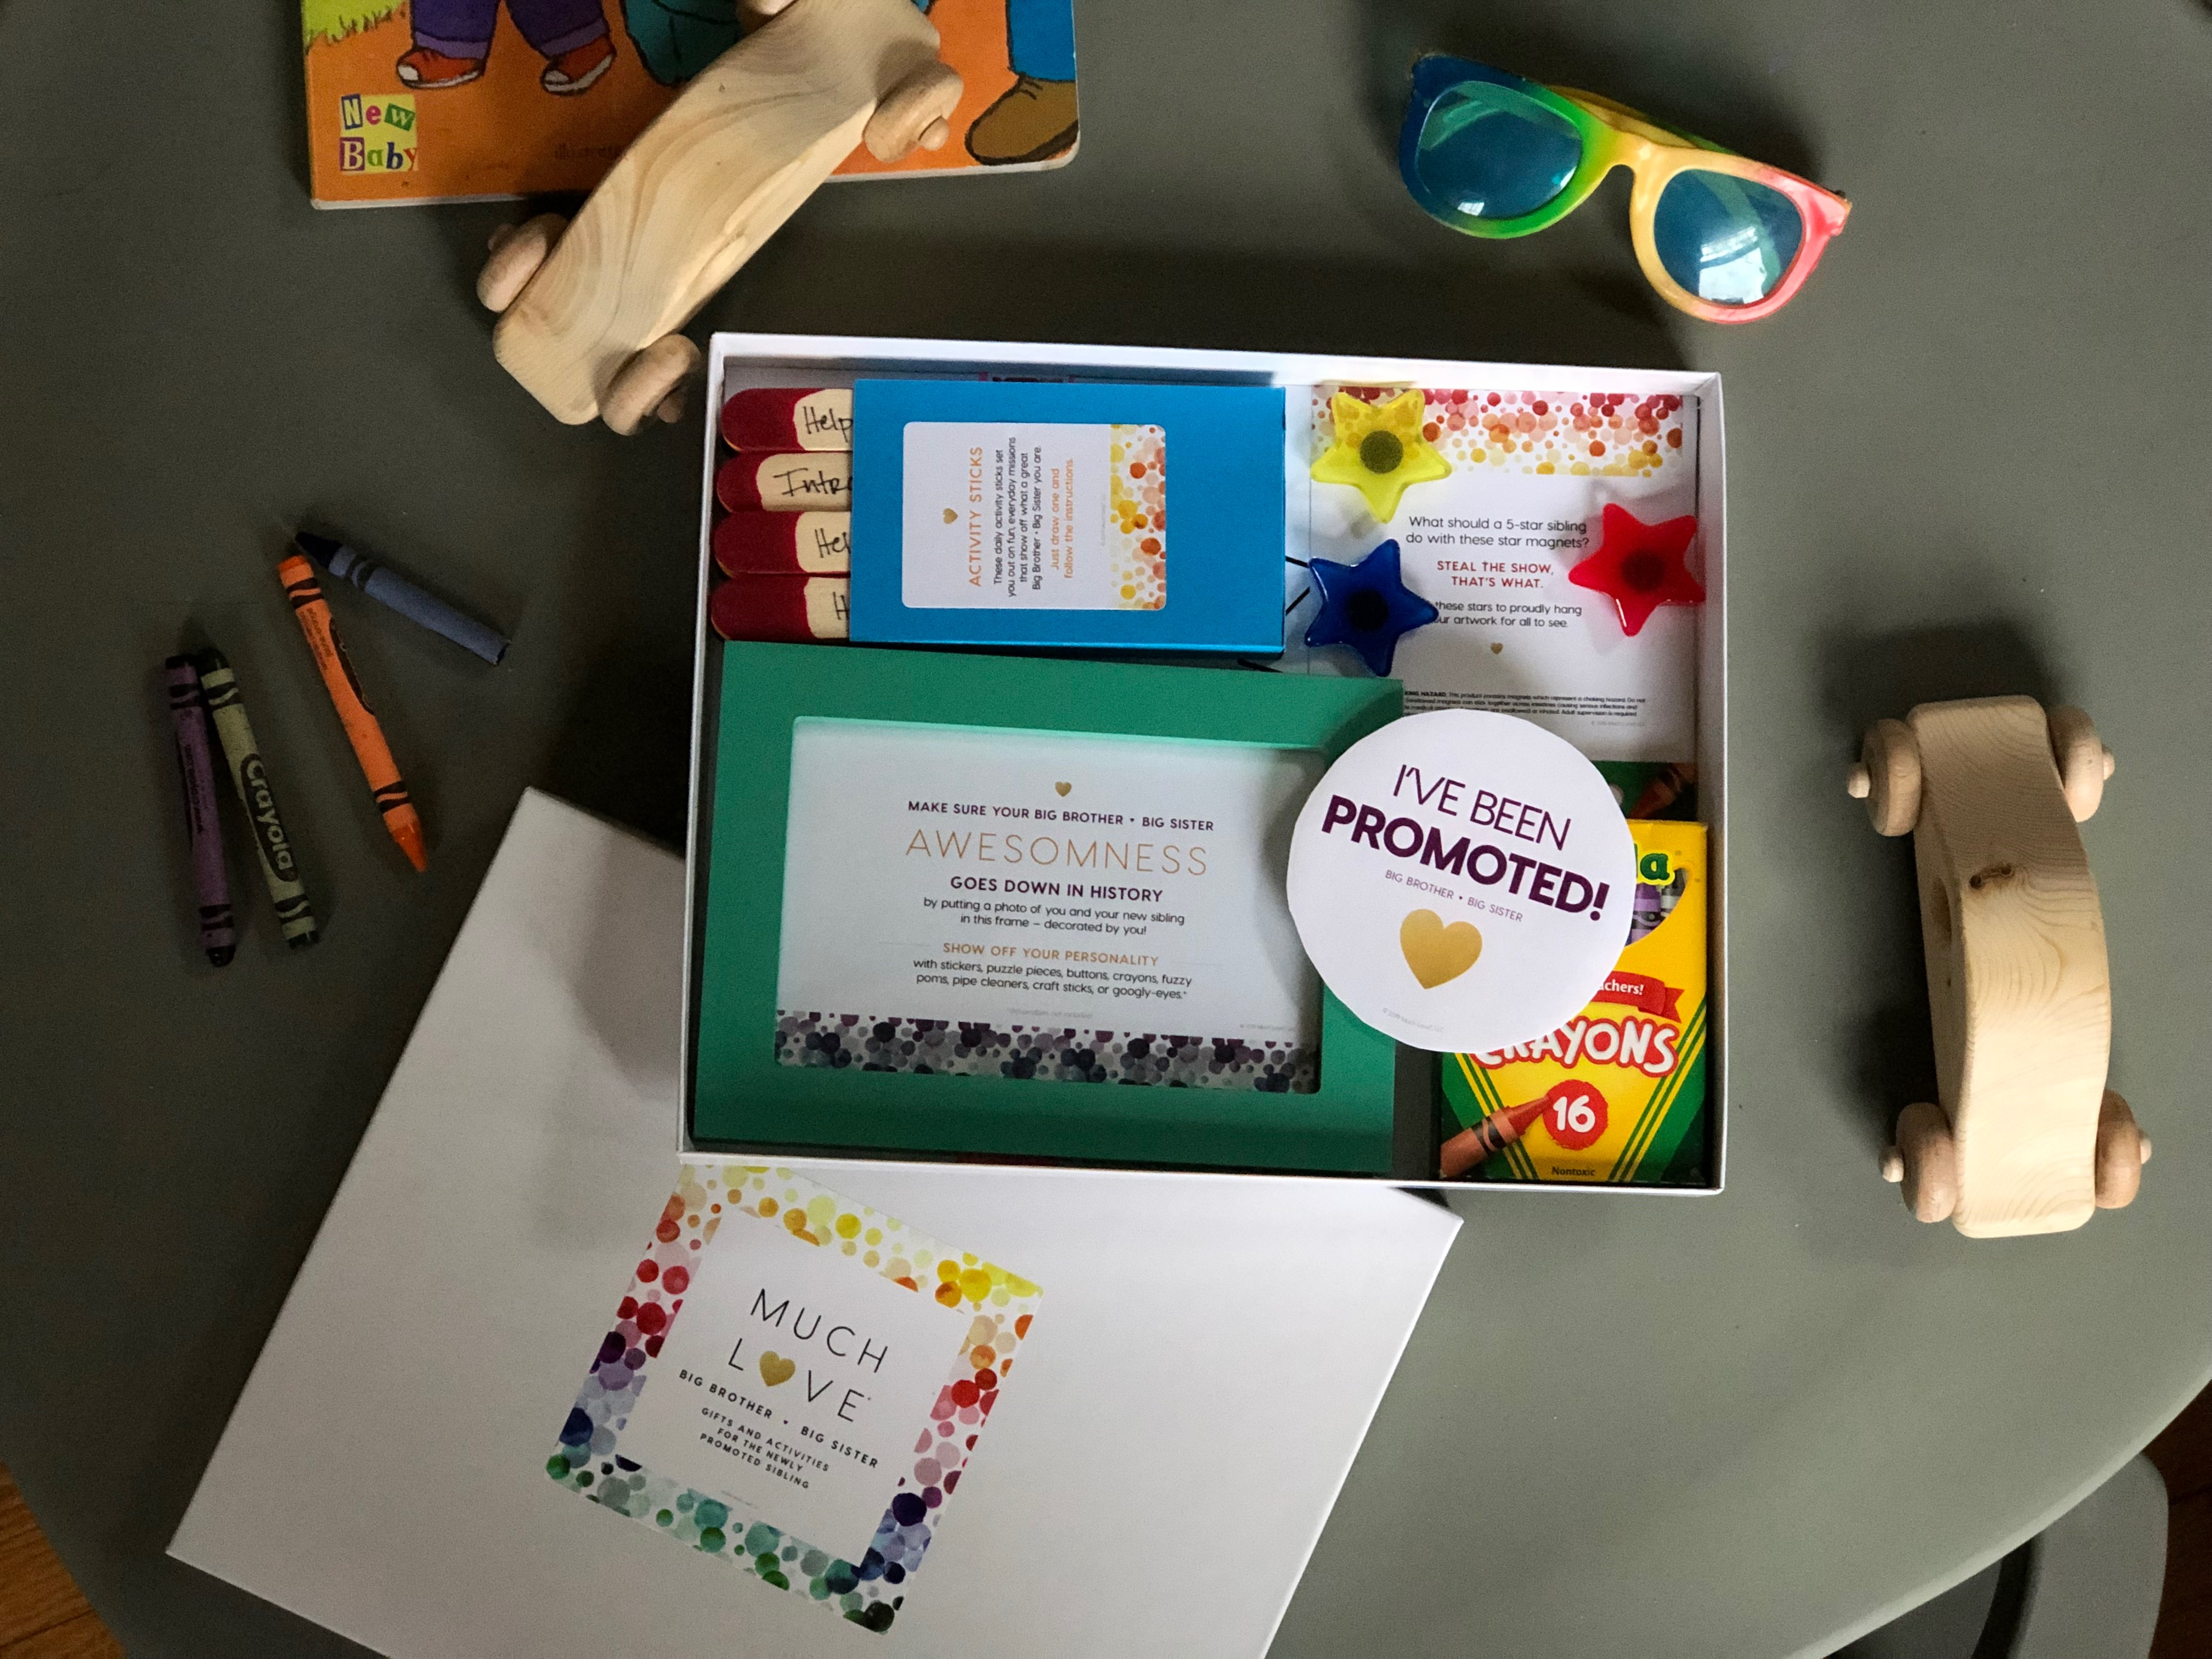 """A gift box in the center with sunglasses and toys around the edge of the box -- in the box are crayons, a """"I've been promoted"""" sticker, activity sticks, and stars."""